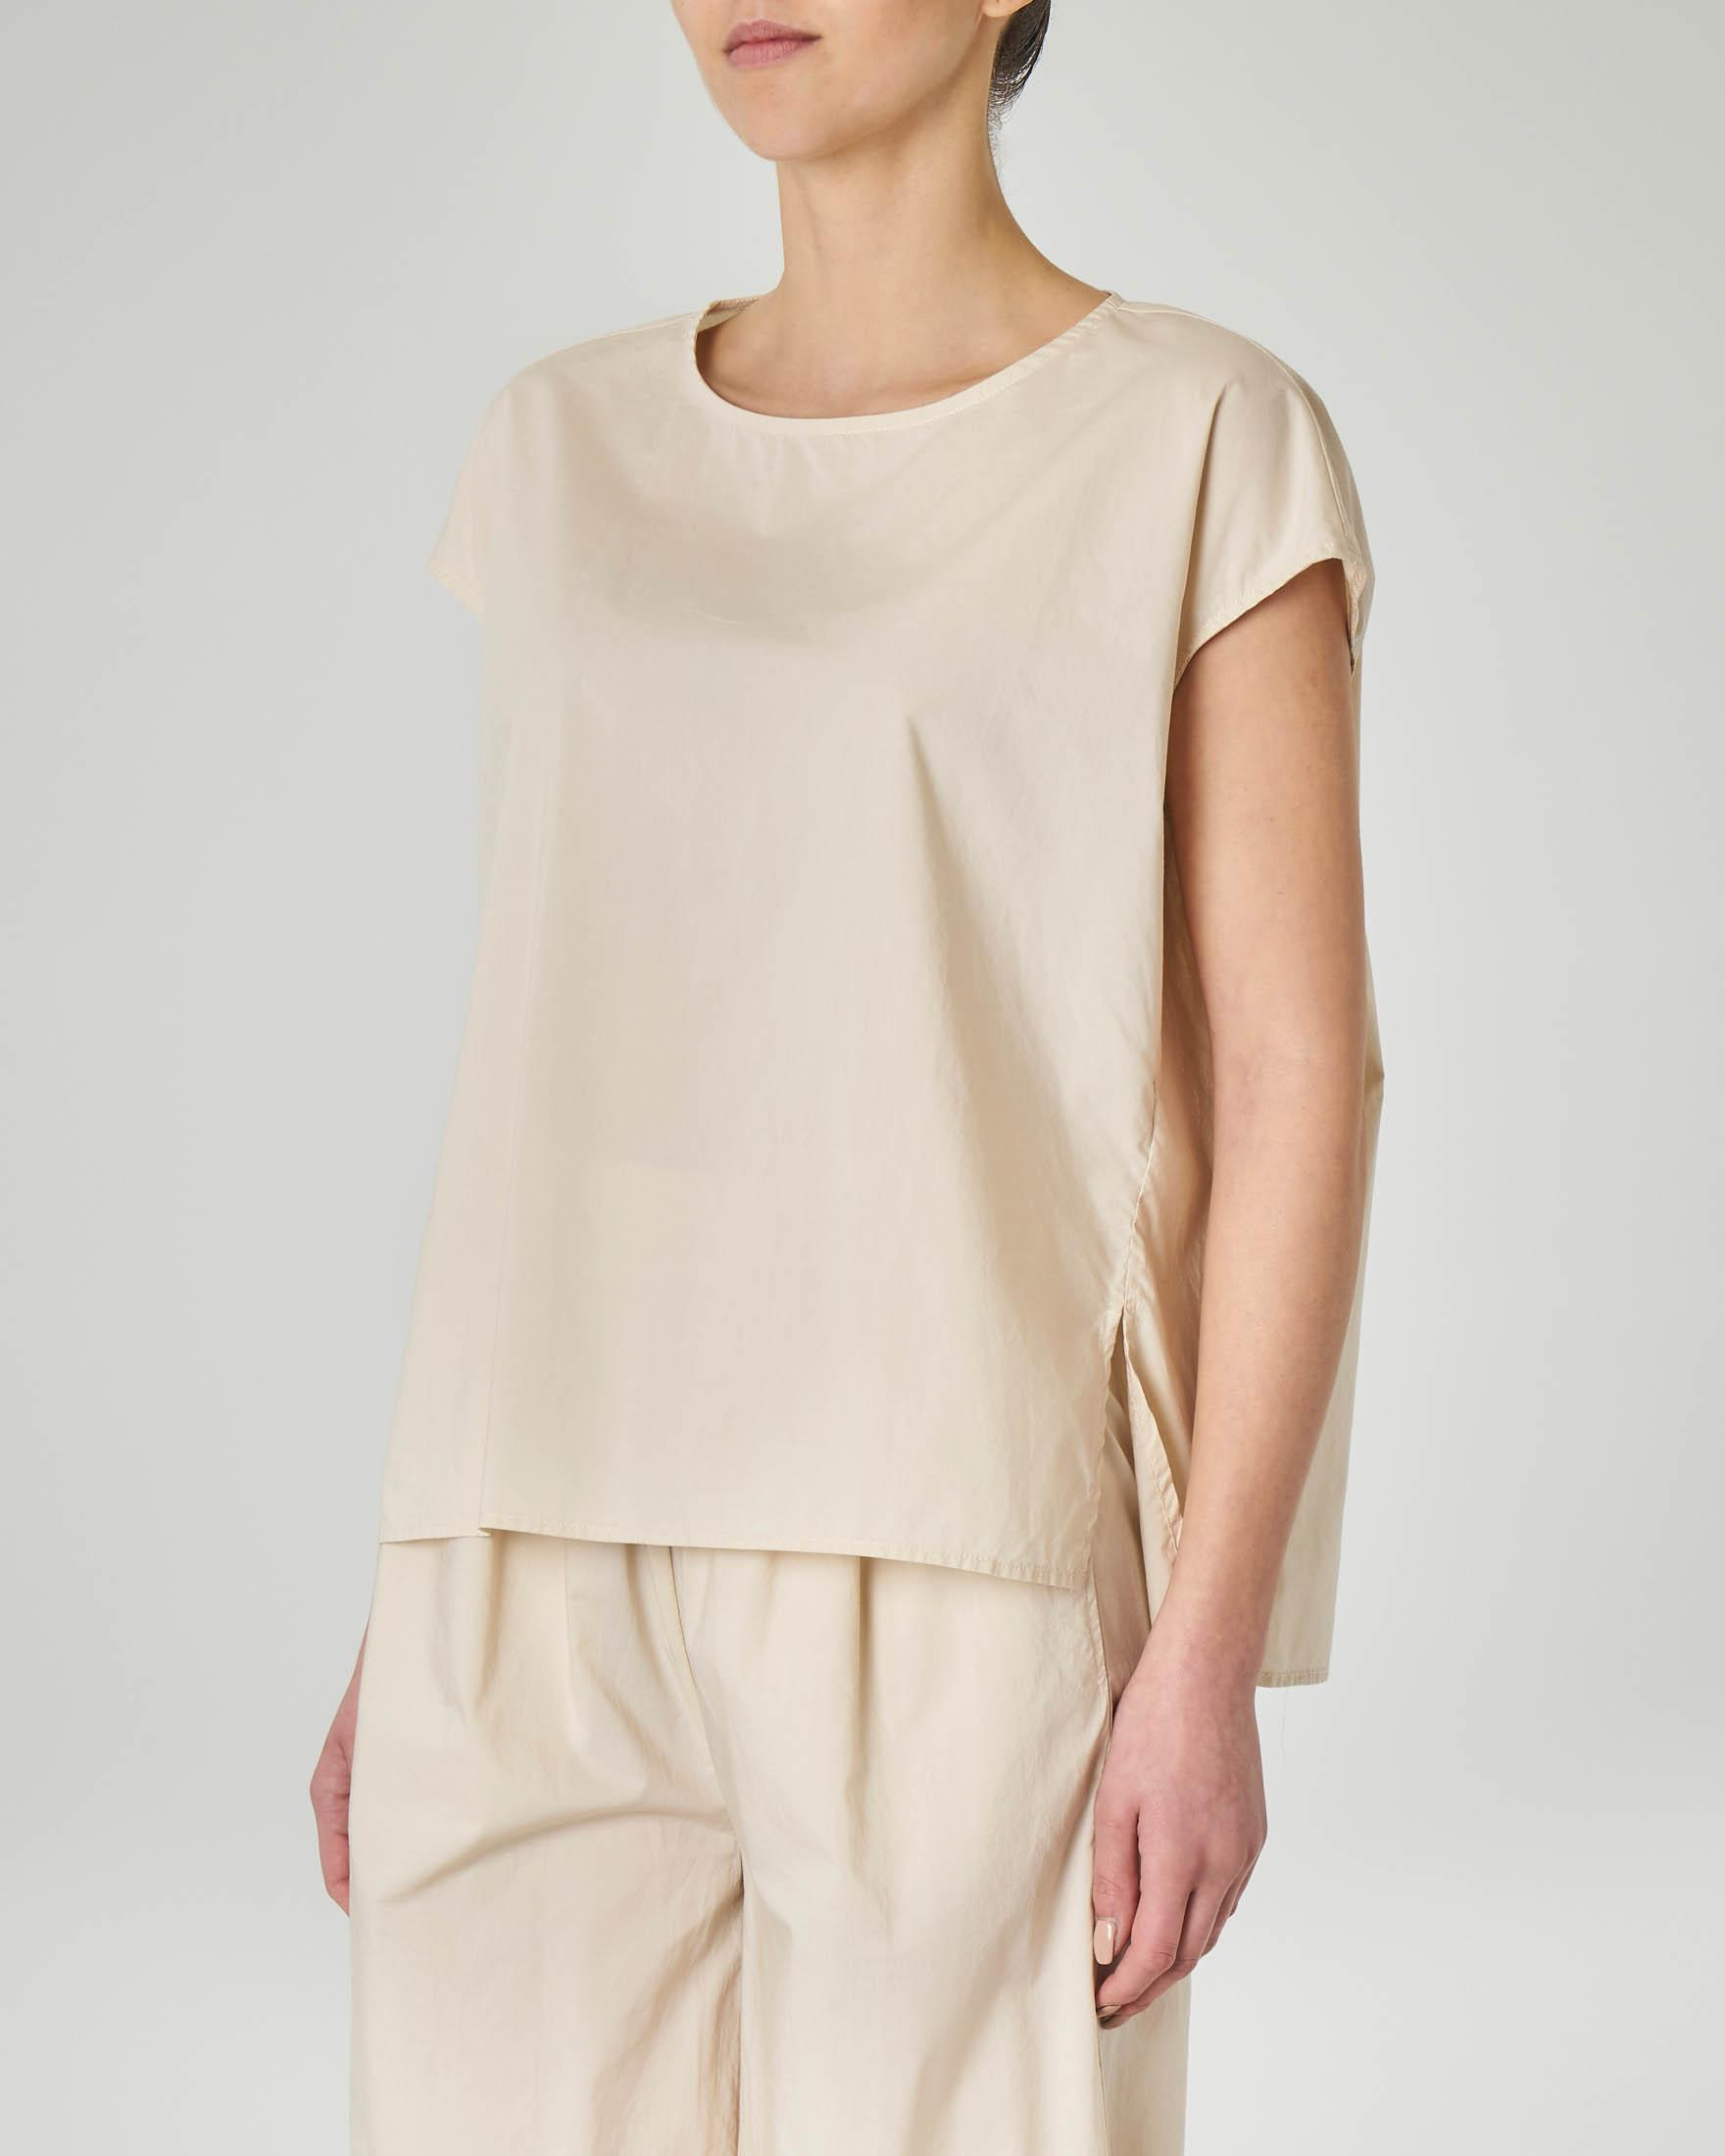 Top girocollo in cotone beige linea dritta over